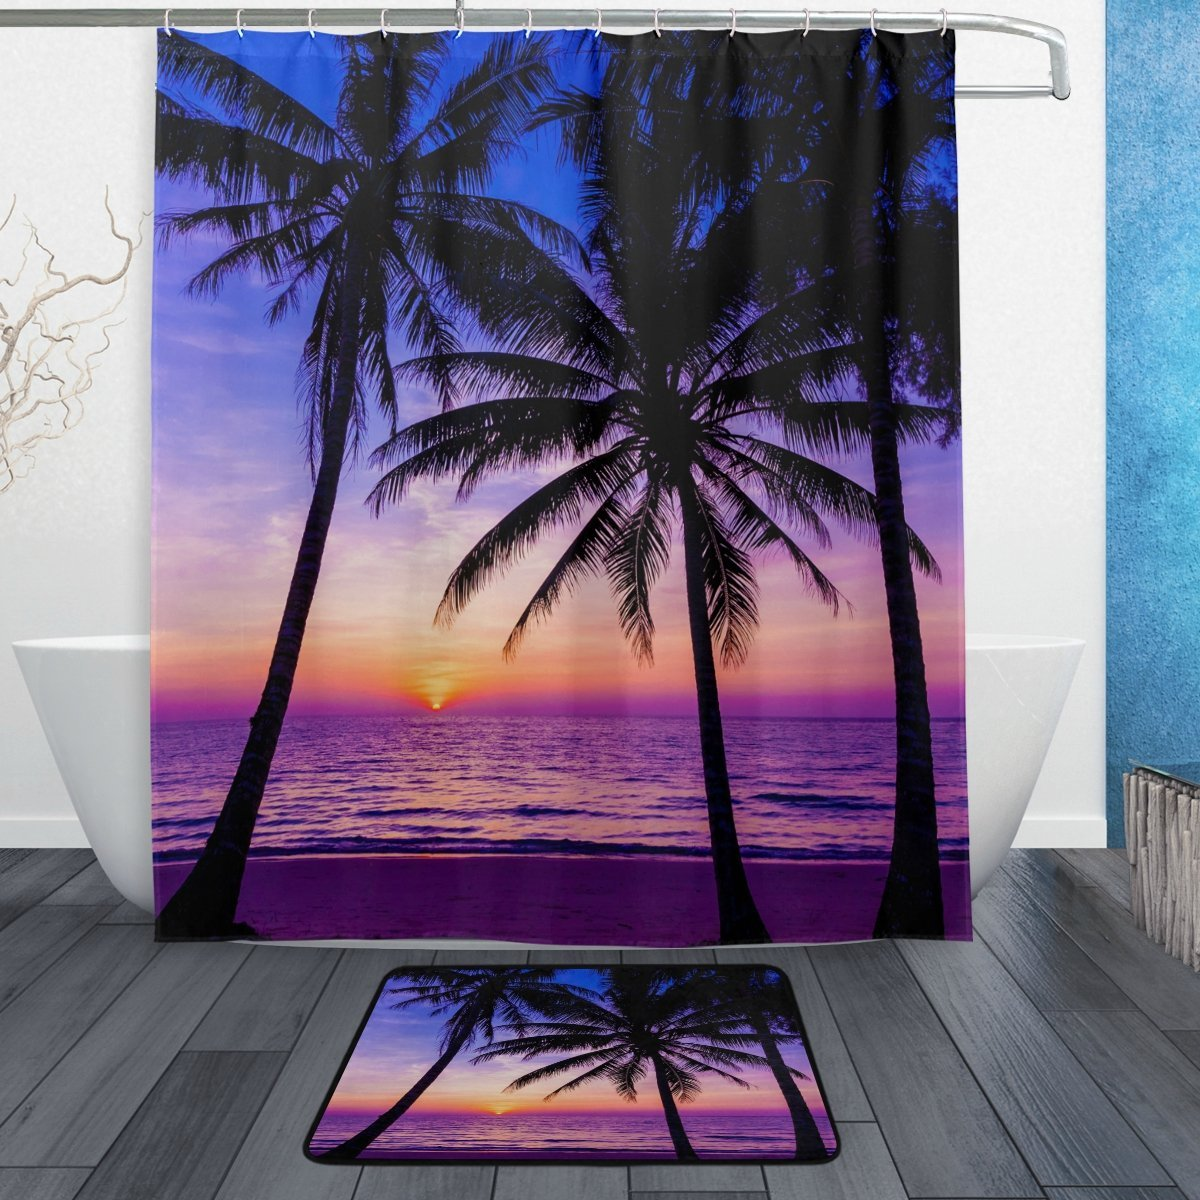 Tropical Island Beach Theme Shower Curtain and Mat Set, Palm Tree Sunset Waterproof Fabric Bathroom Curtain